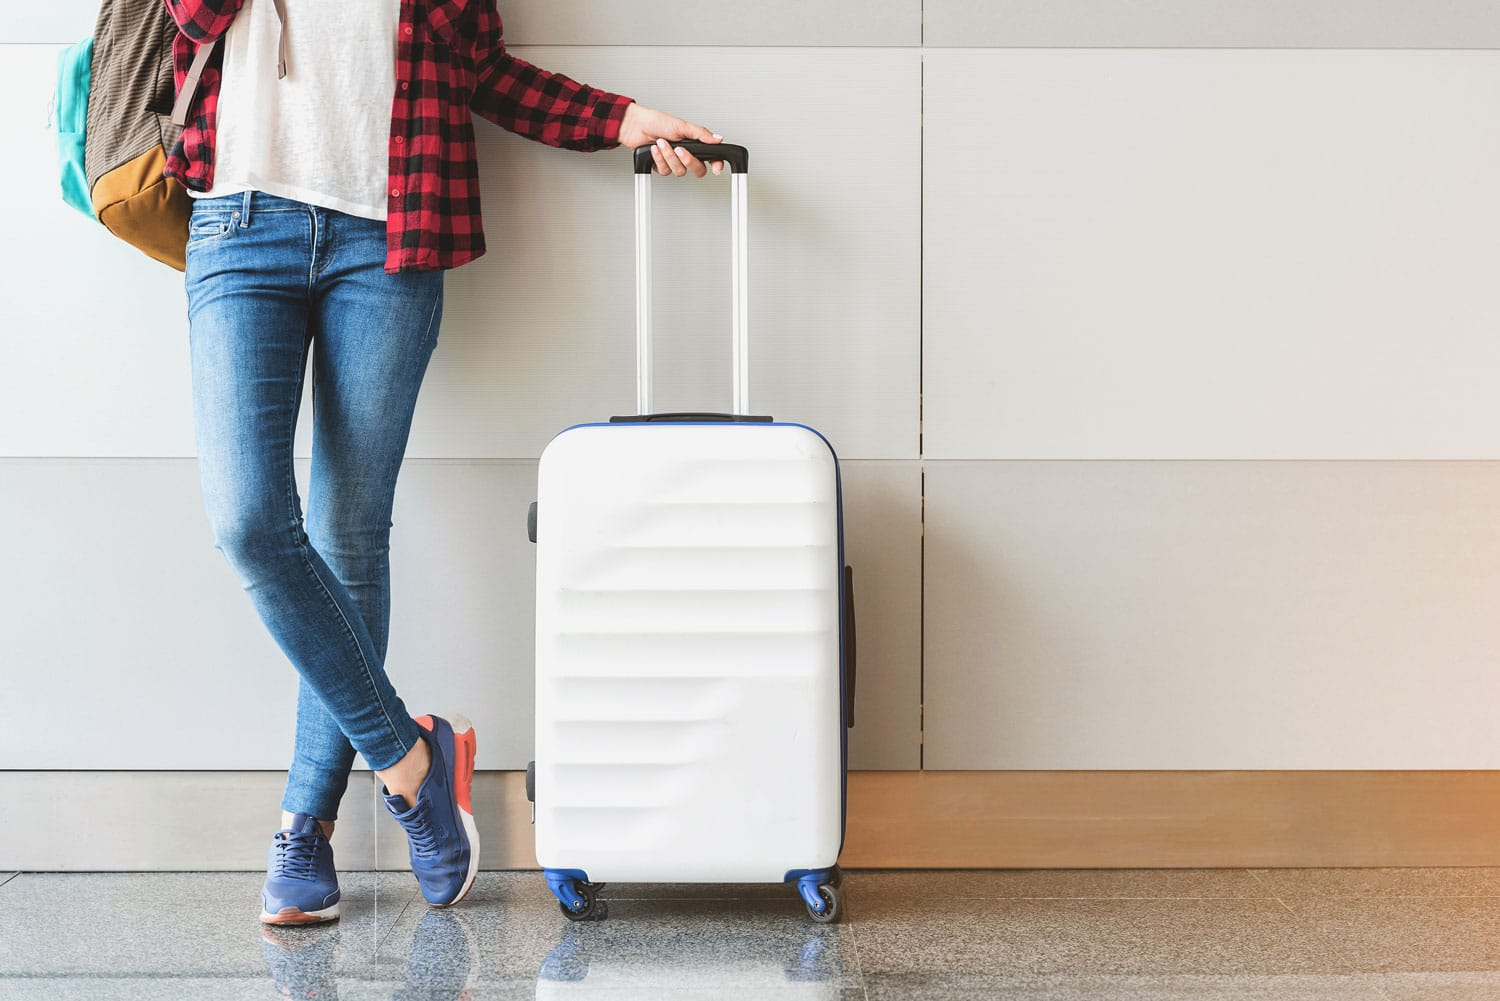 Image result for suitcase at airport